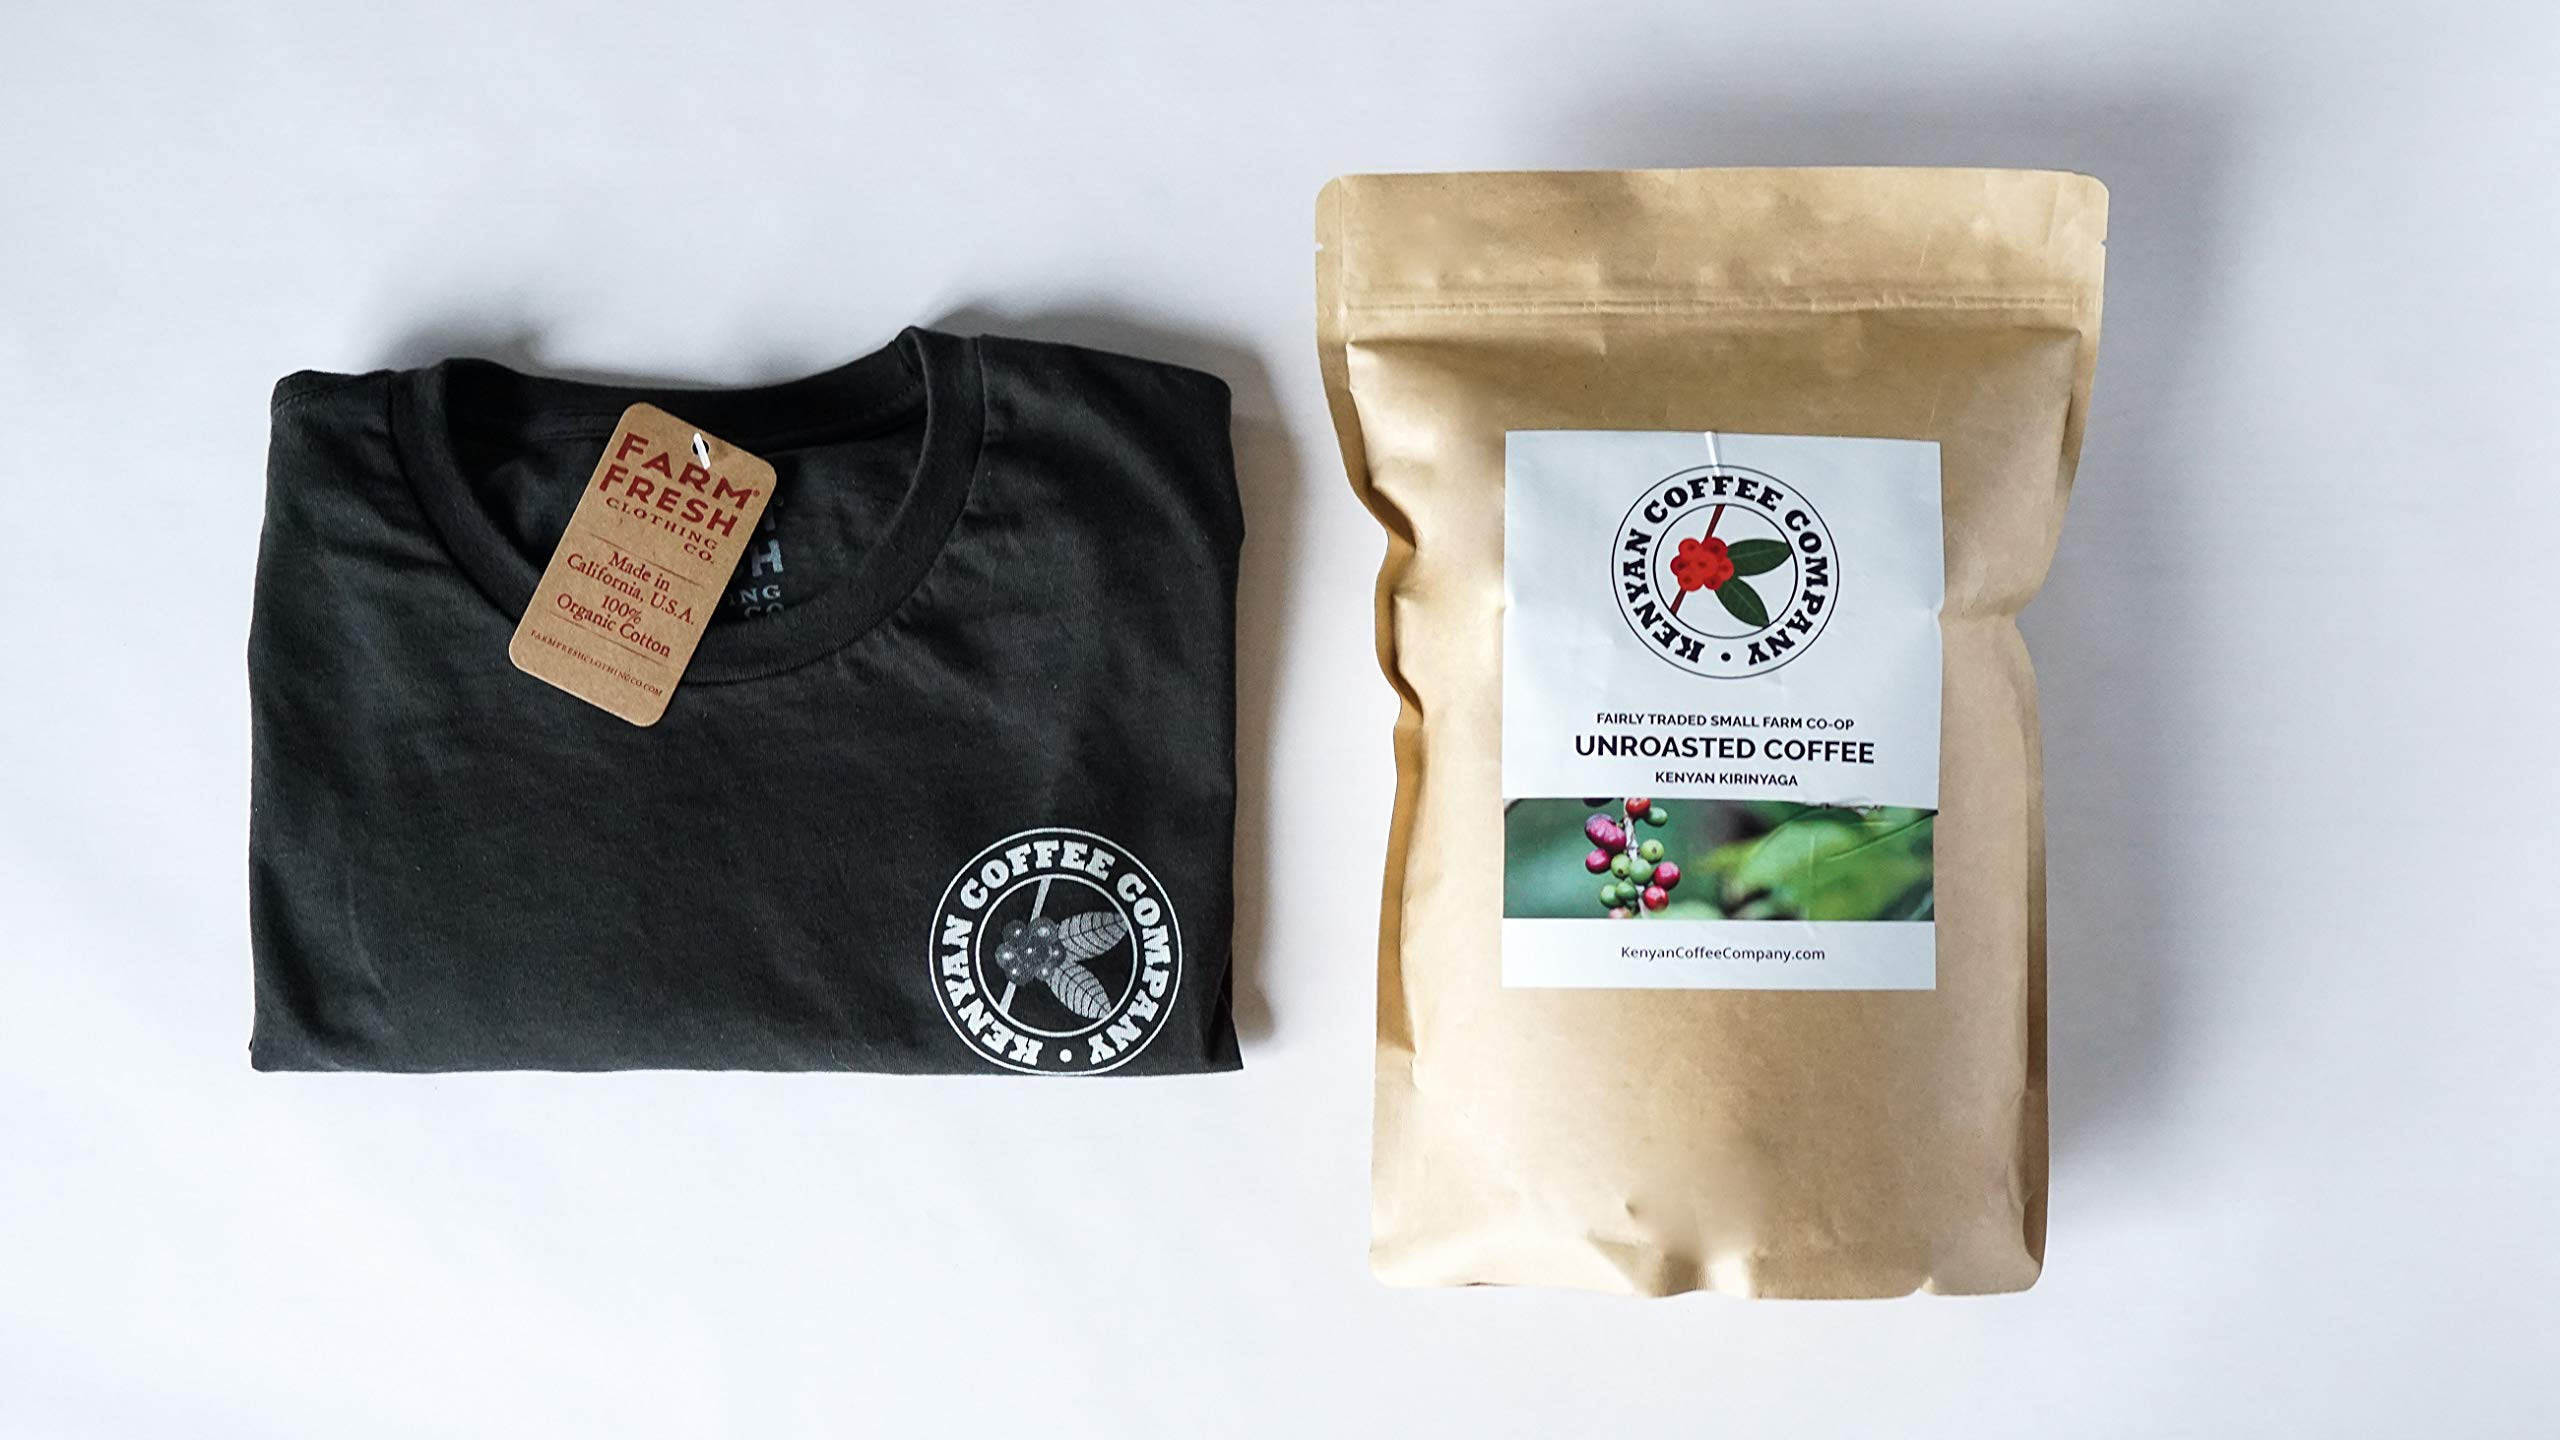 Single Origin Unroasted Green Coffee Beans, AA Grade From Small Regional Kenyan Coffee Farmer Co-Op. Direct Trade (5 Pounds & Free T-Shirt)